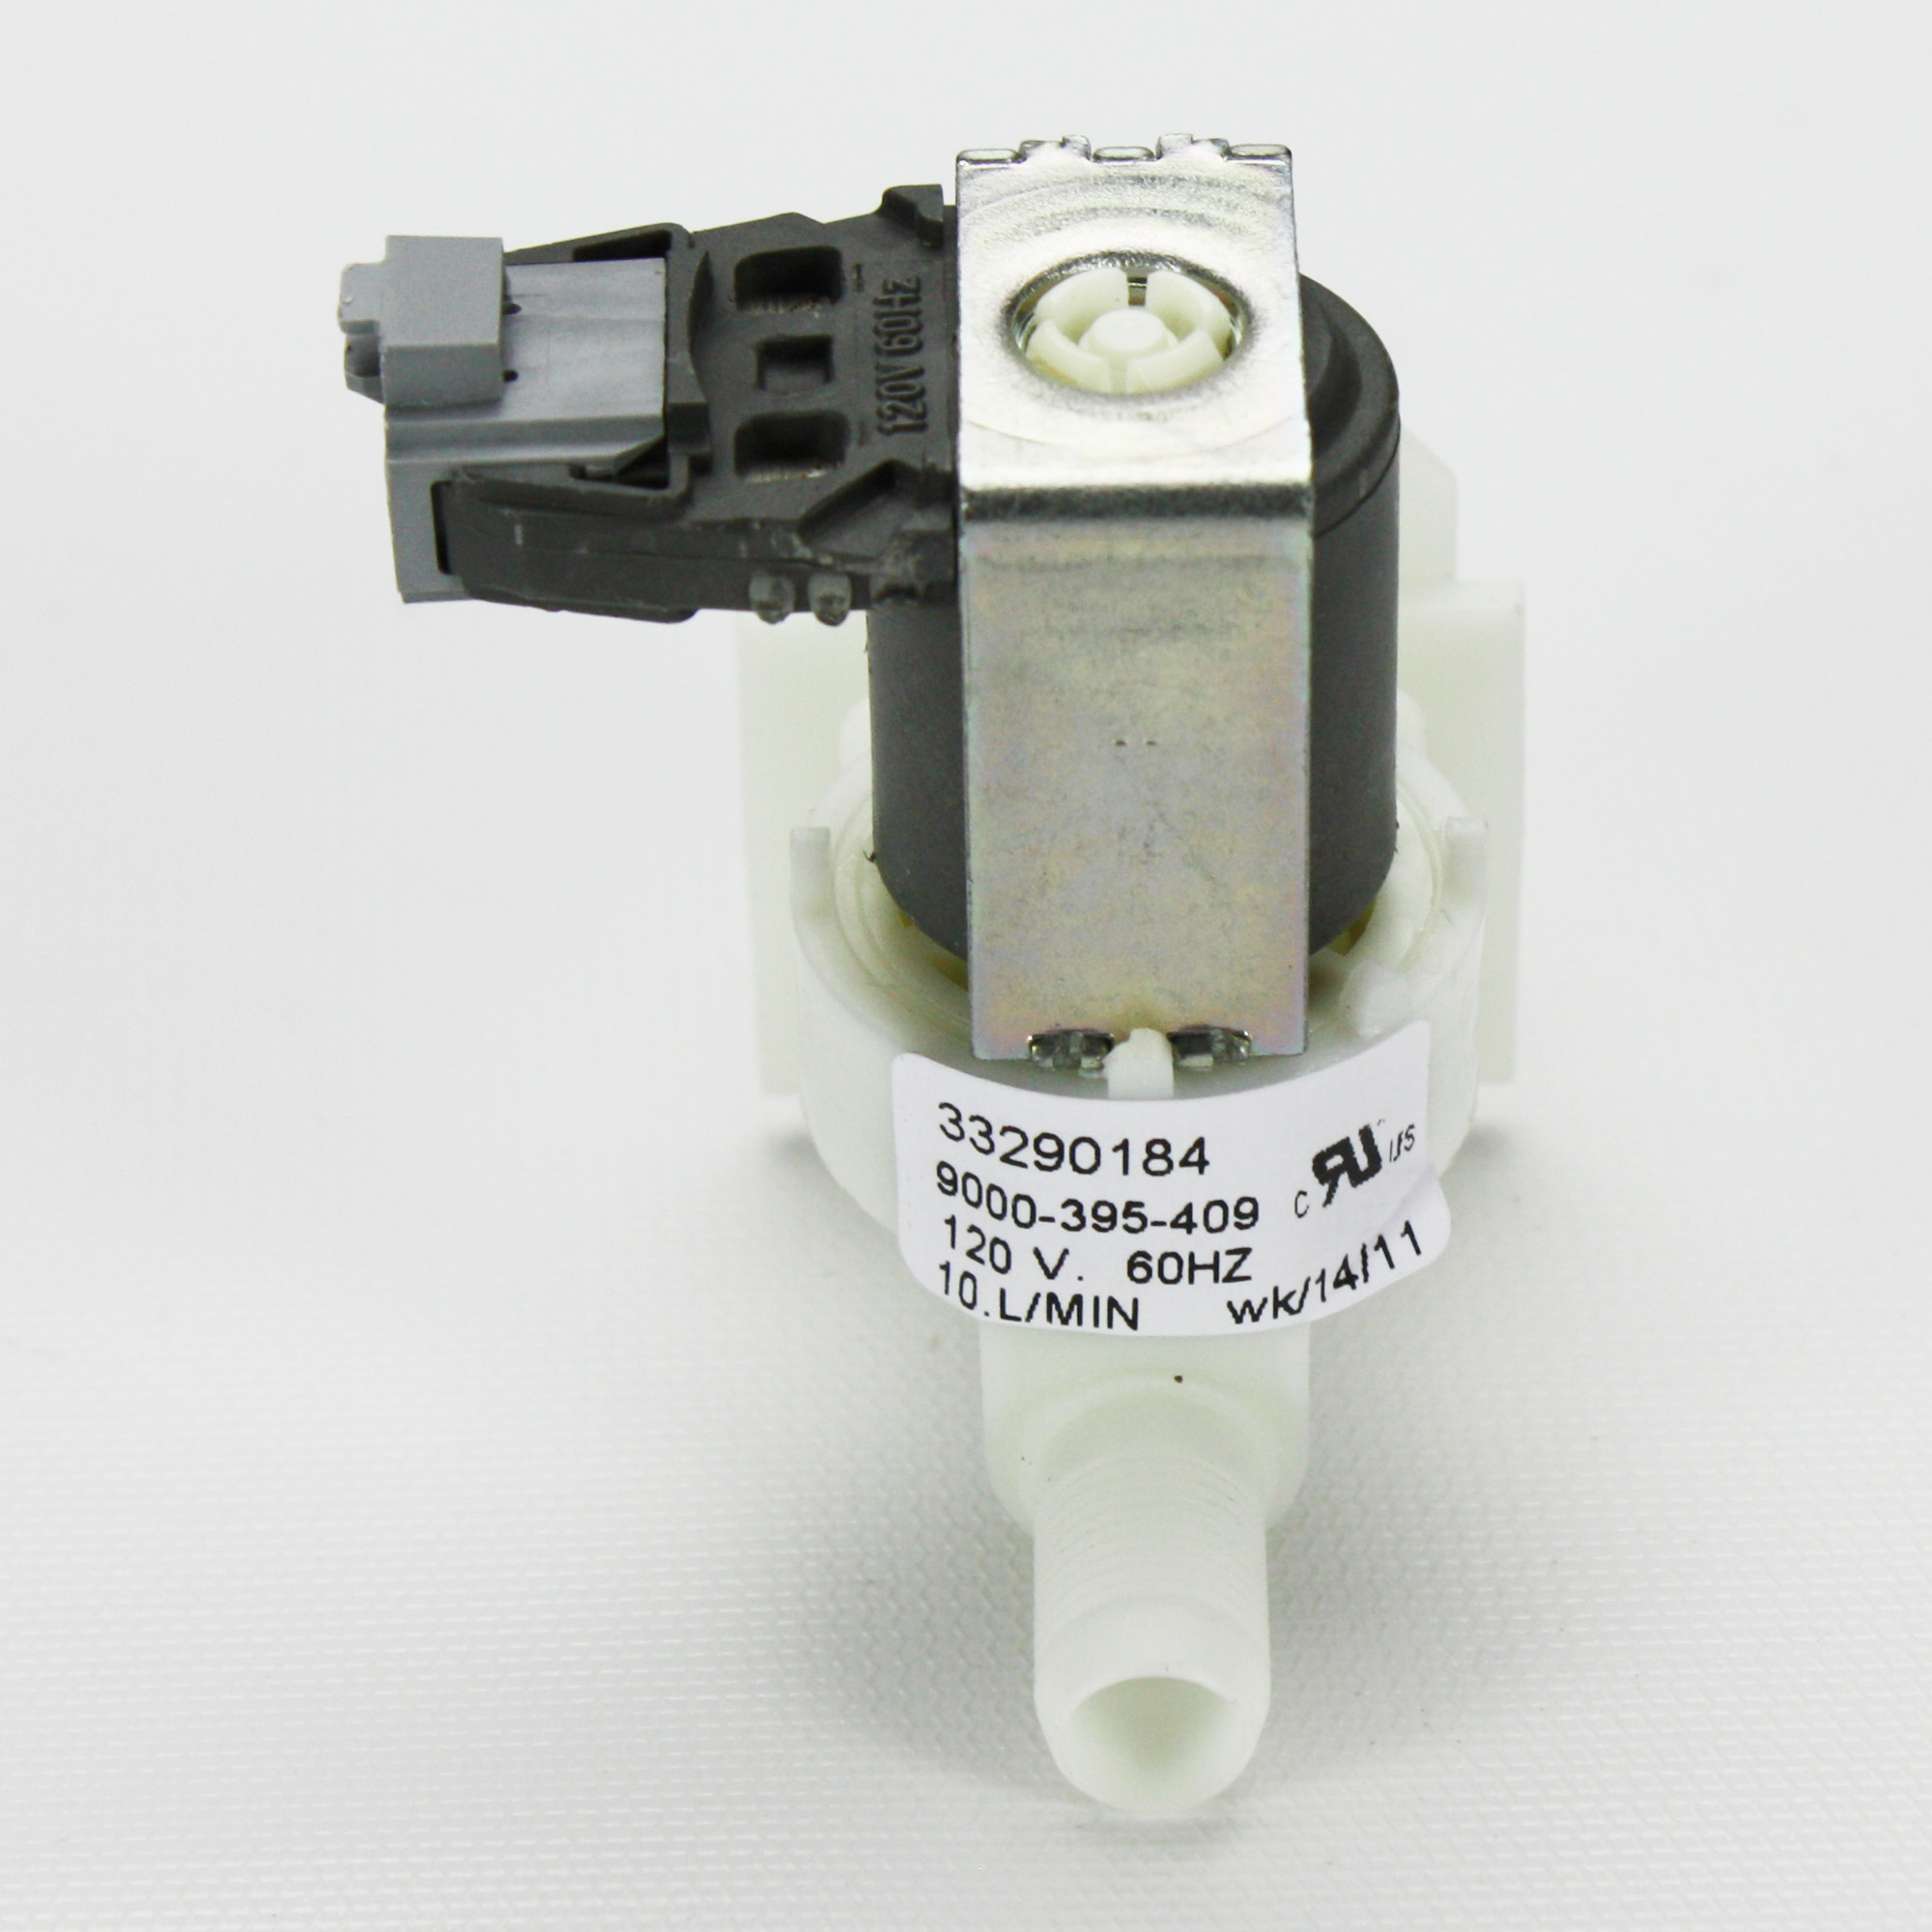 washing machine inlet valves